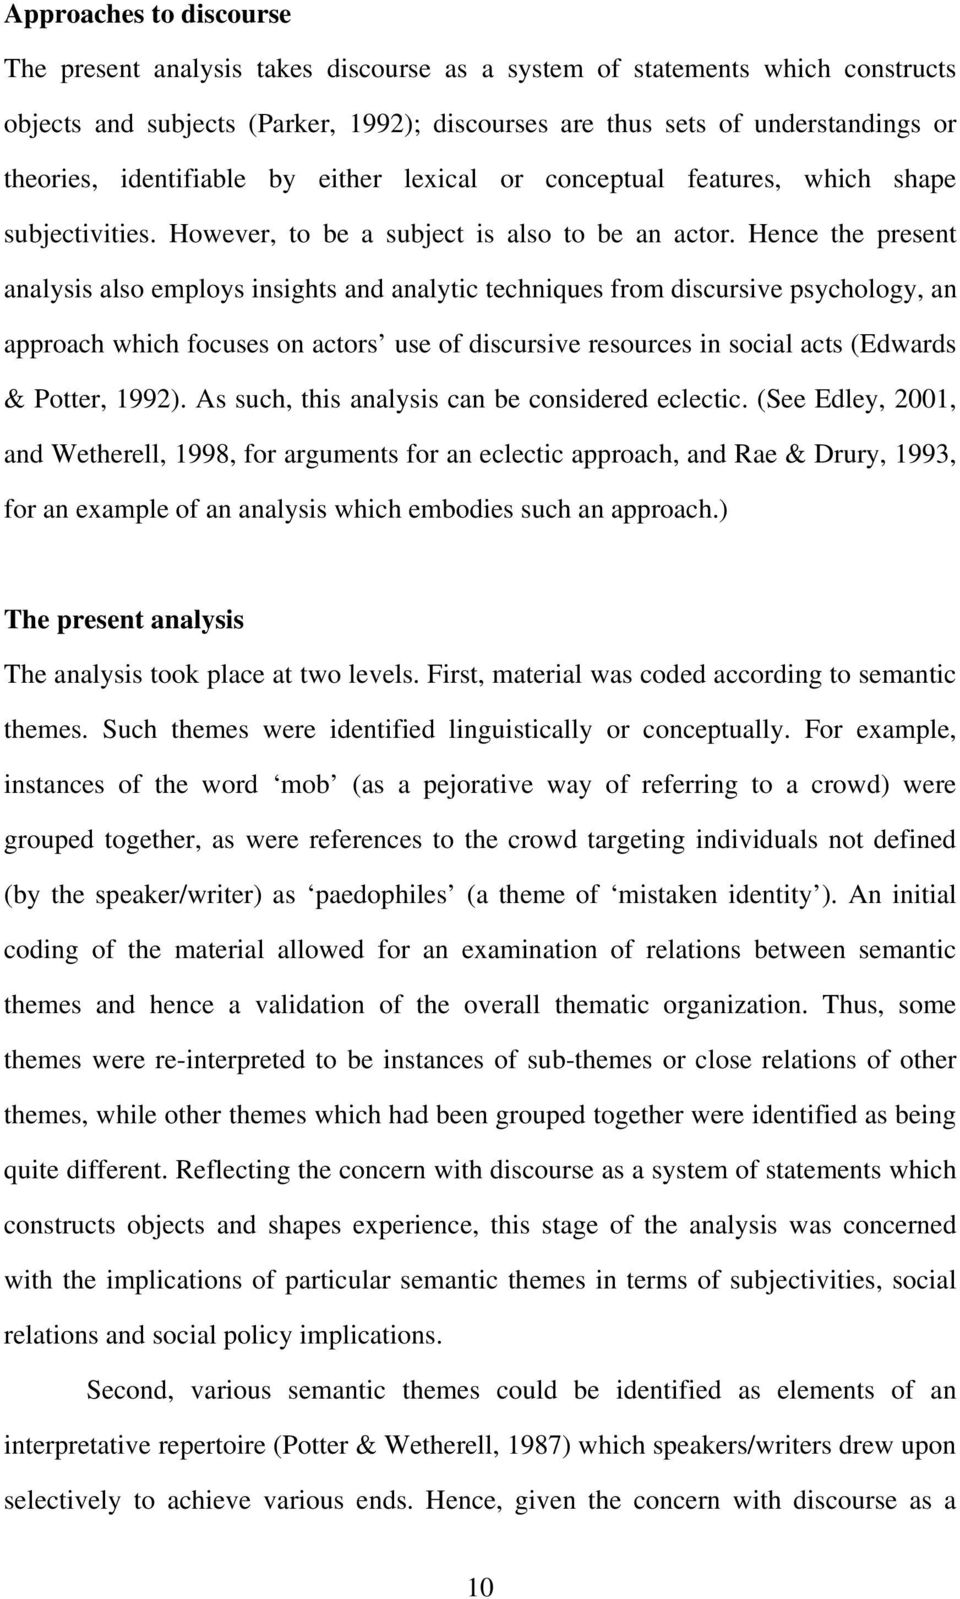 Hence the present analysis also employs insights and analytic techniques from discursive psychology, an approach which focuses on actors use of discursive resources in social acts (Edwards & Potter,